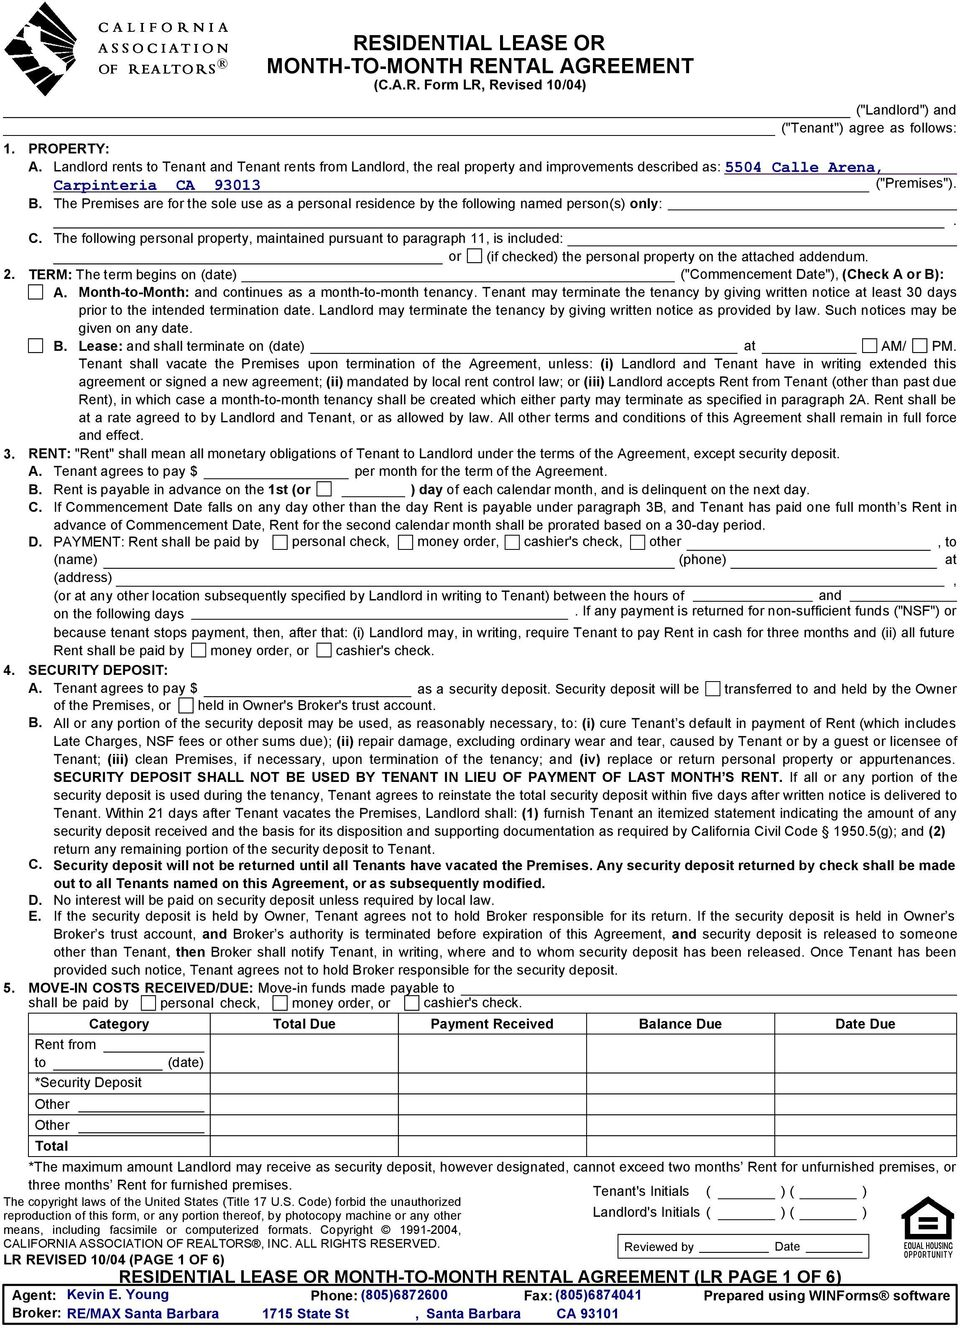 California Association Of Realtors Lease Form Erkal